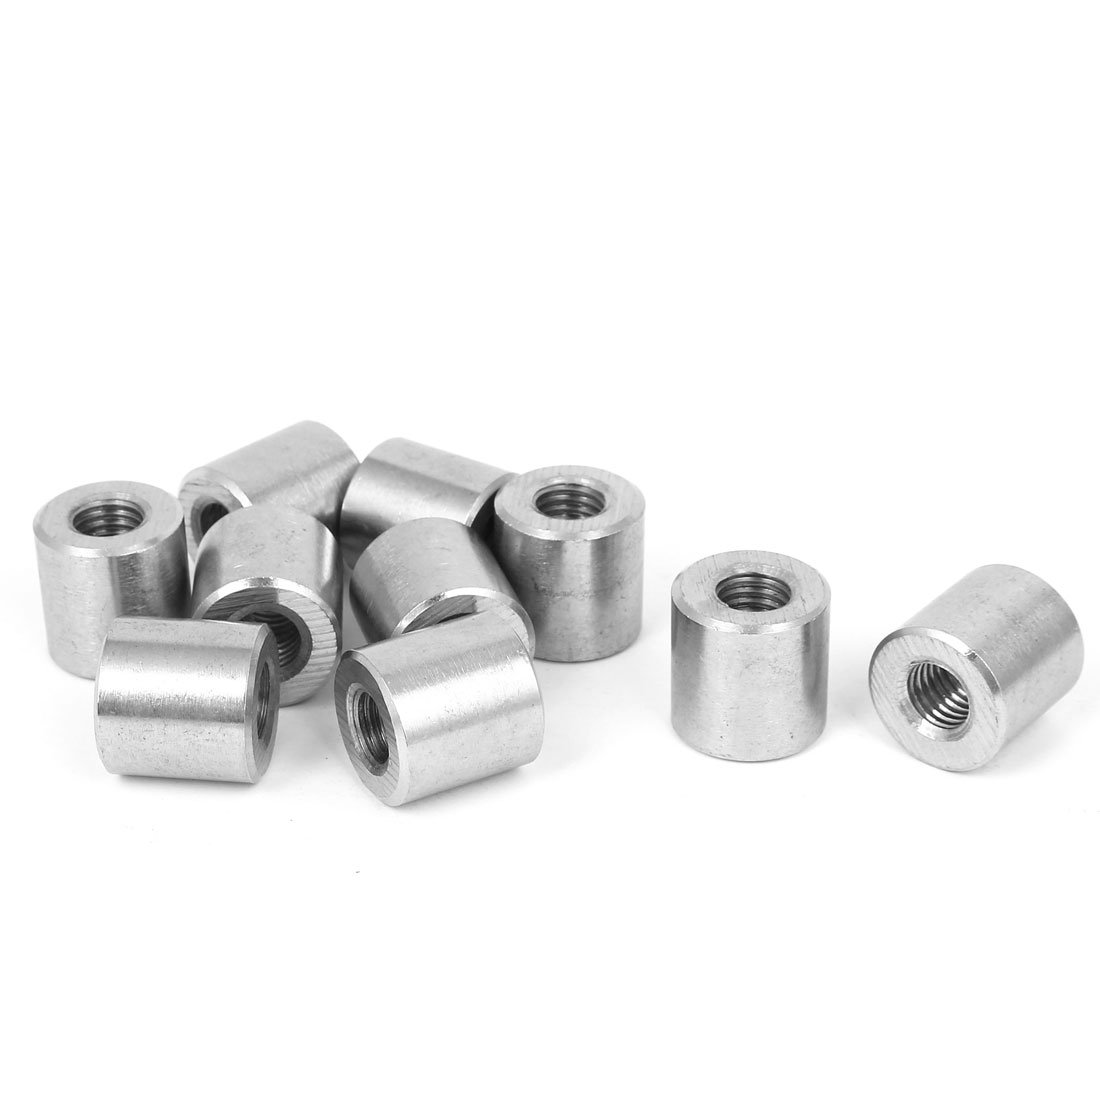 uxcell M12 x 1.75mm Threaded Insert Rose Joint Tube Adapter Round Connector Nuts 10pcs